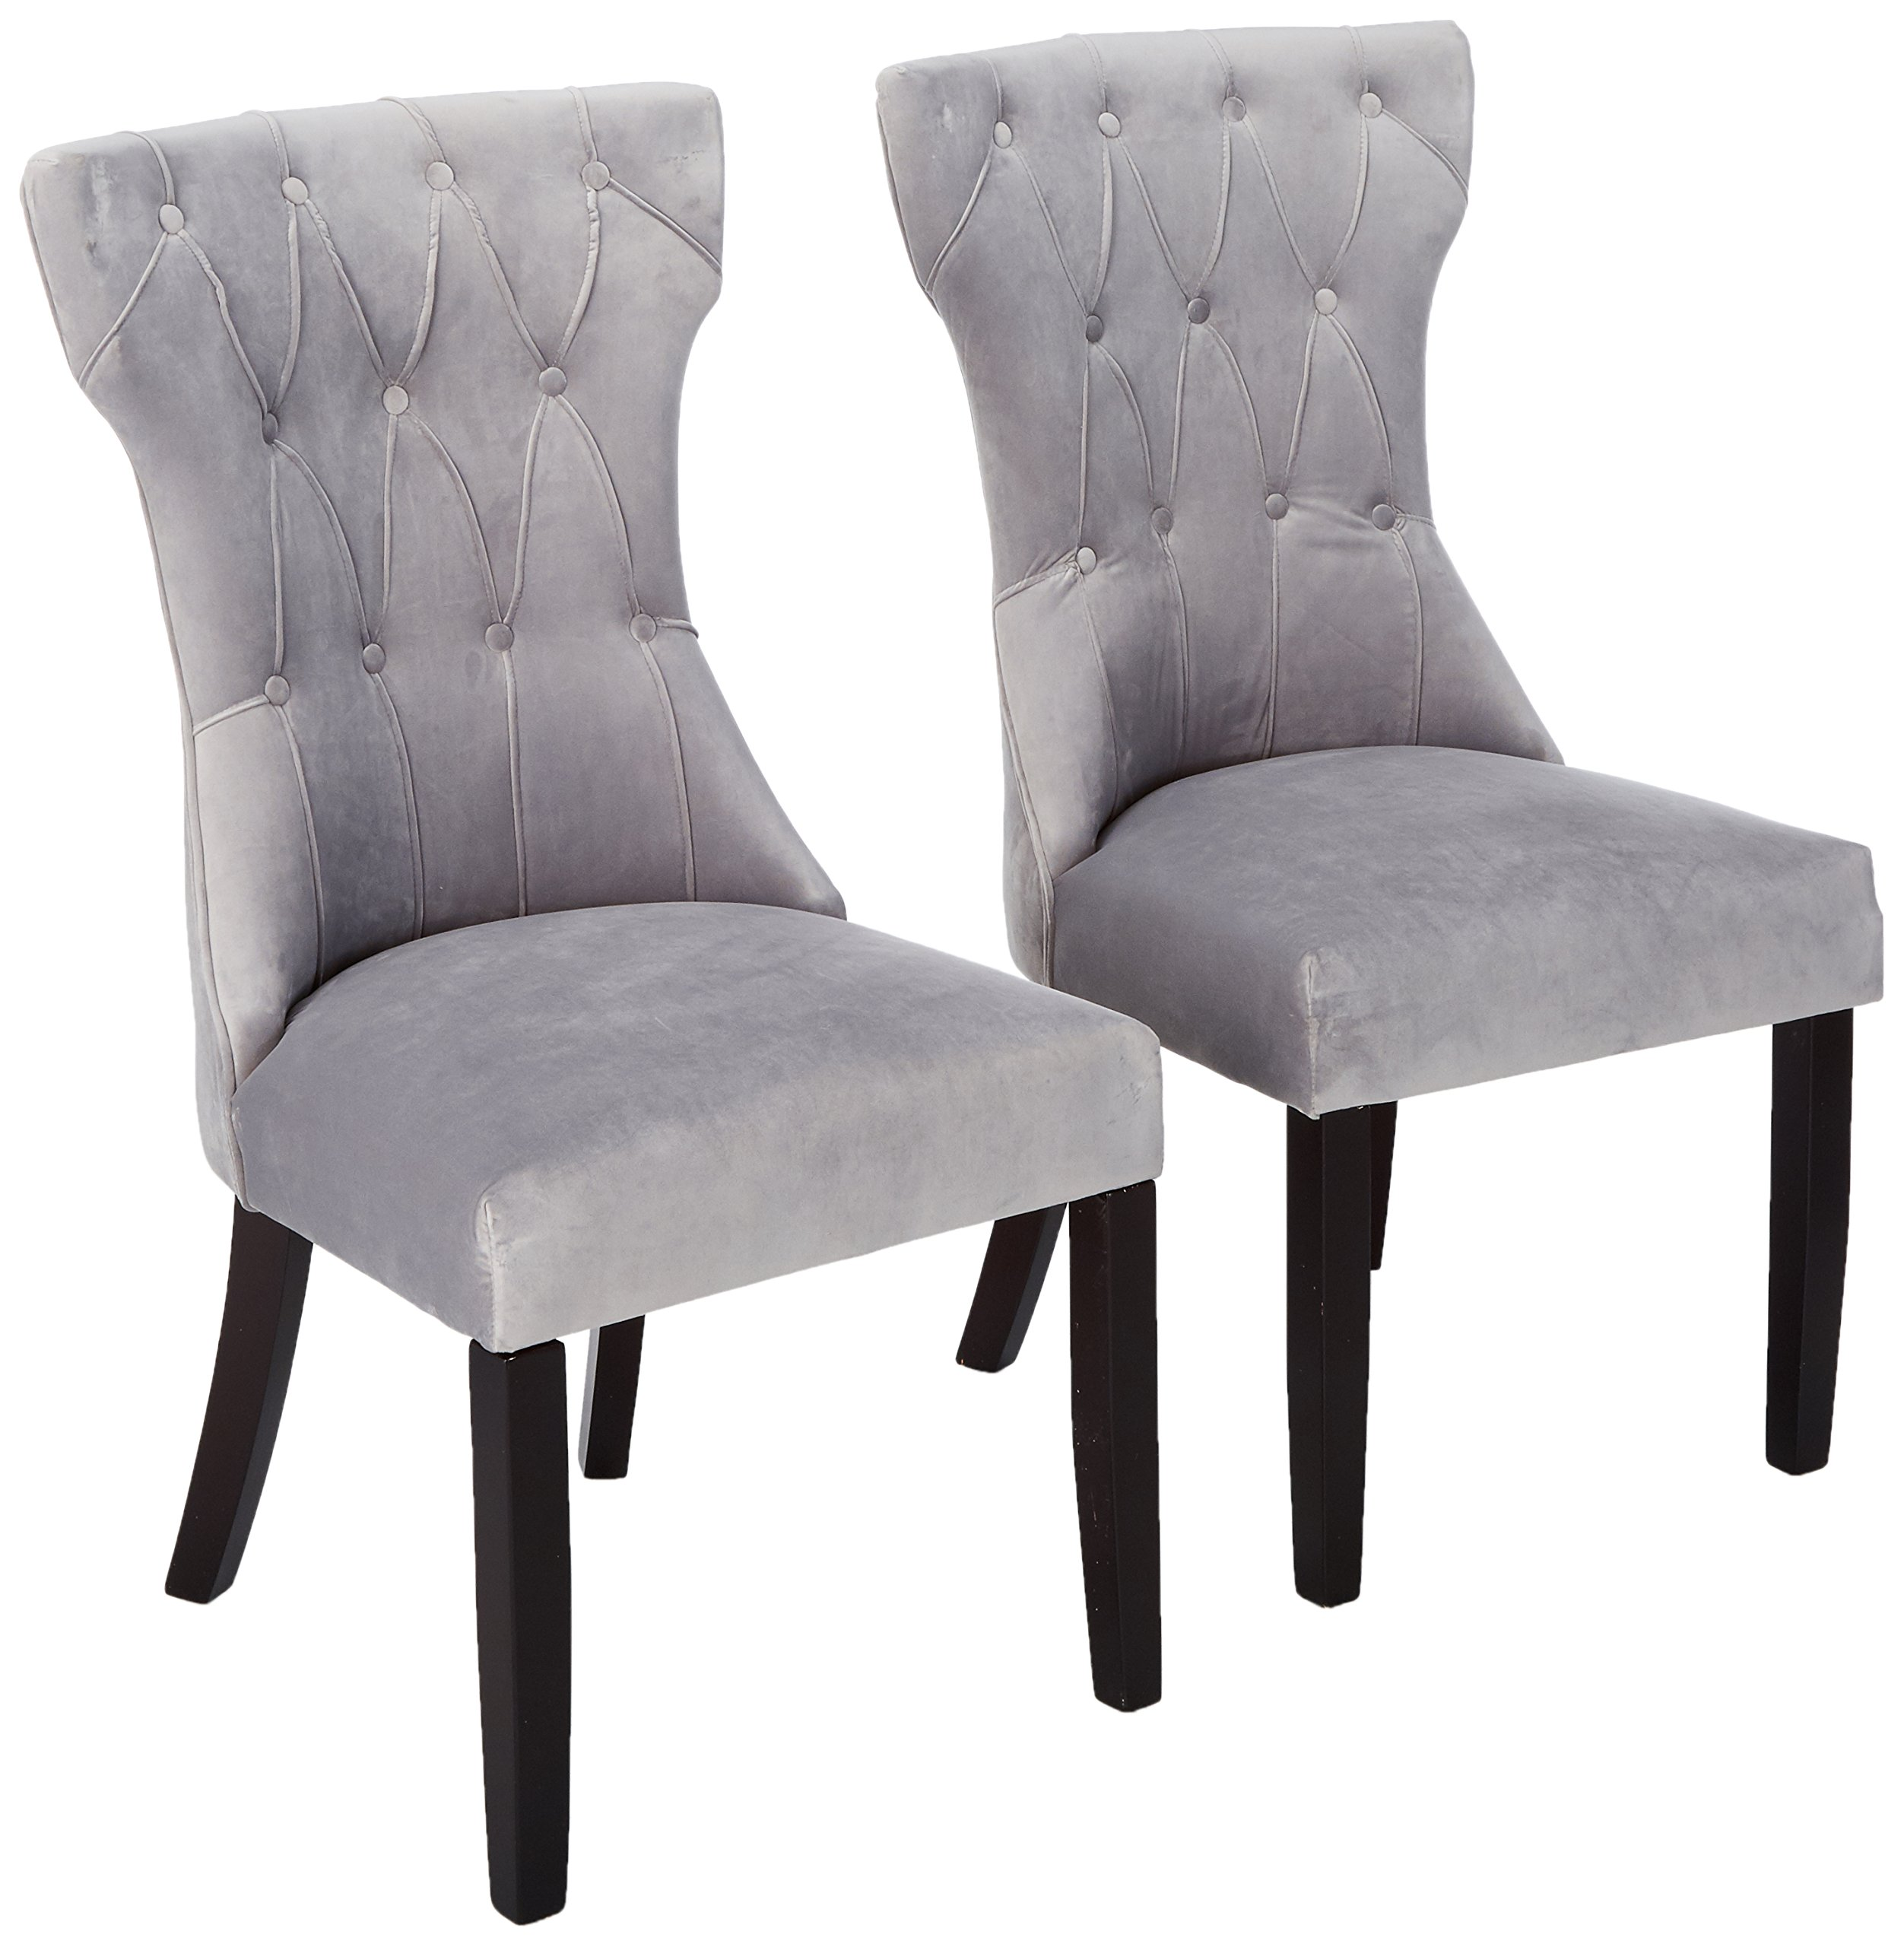 Roundhill Furniture C201GY Reims Velvet Tufted Upholstered Solid Wood Dining Chairs- Set of 2, Gray - Sold as a Set of 2 matching chairs - elegant, Classic upholstered dining room chairs Tapered chair Back featuring beautiful Diamond Pattern tufting with covered buttons in a timeless Hourglass silhouette Gently curved Espresso finished solid wood legs; legs are located in the compartment beneath the chair Seat - kitchen-dining-room-furniture, kitchen-dining-room, kitchen-dining-room-chairs - 81tVzwwn9SL -